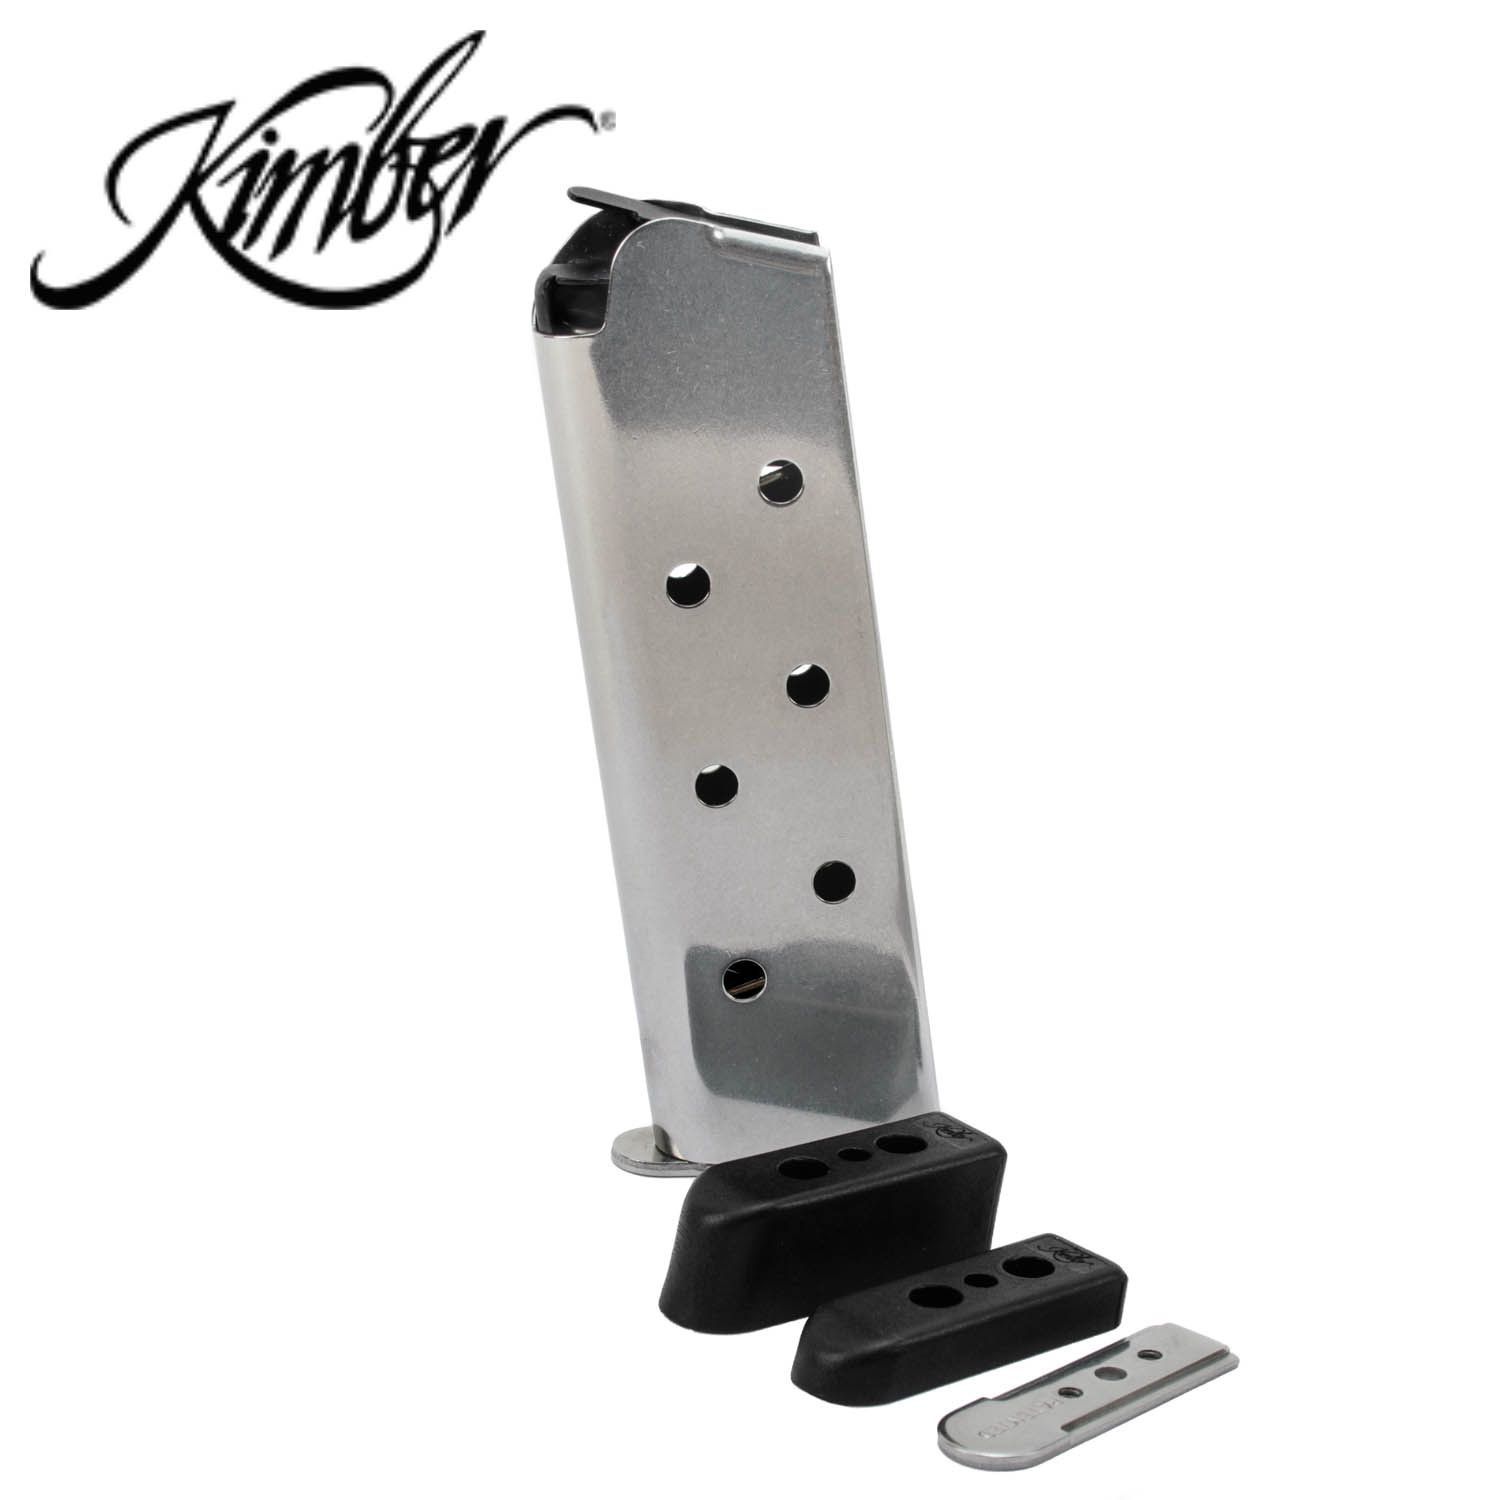 Kimber, KimPro Tac-Mag  45 ACP Full Size Stainless 8 Round Capacity:  Midwest Gun Works